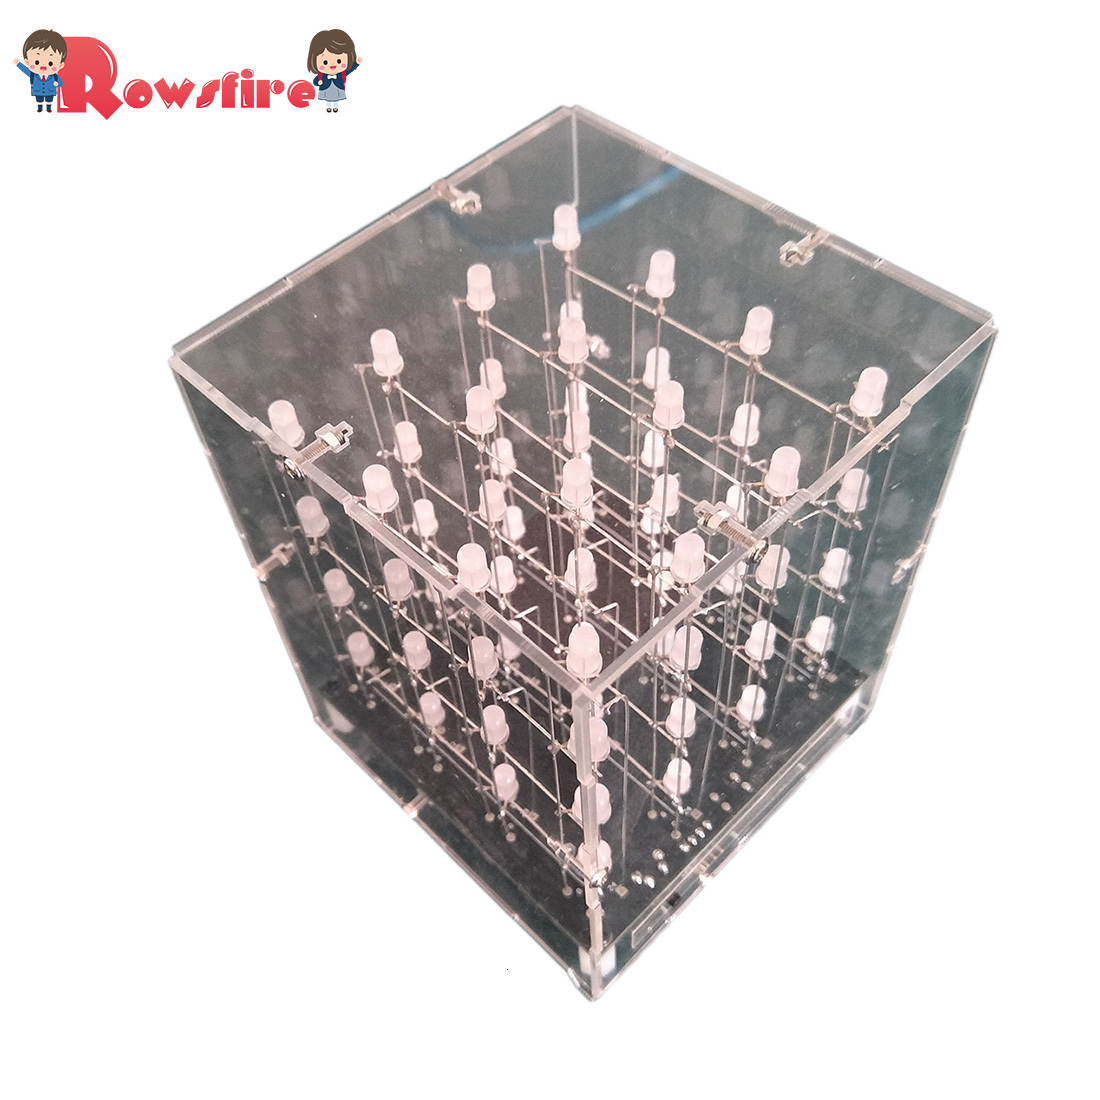 4 X 4 X 4 3D Multicolor Led Light Cube Kit Infrared Remote Control LED Light Cube - Finished Product